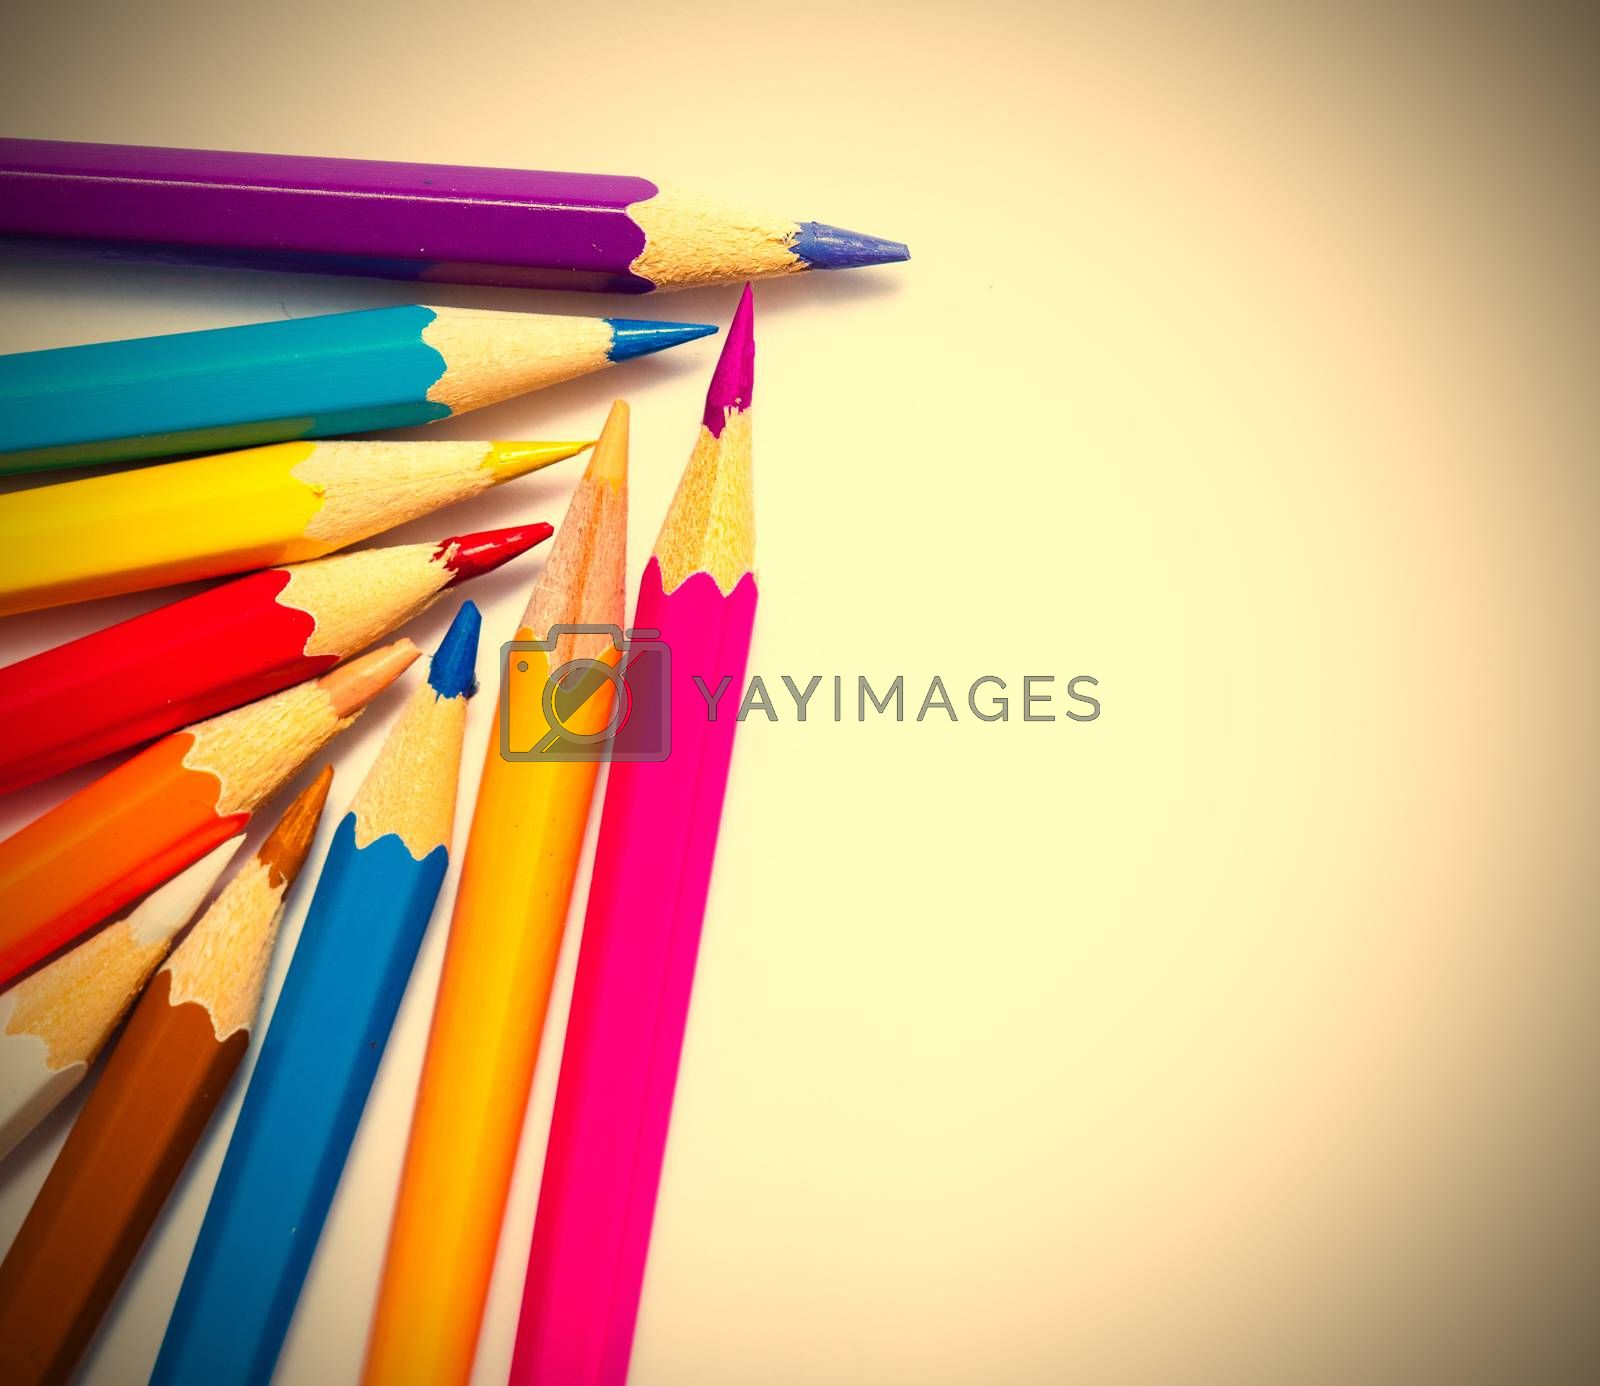 Royalty free image of set of colored pencils on white background by Astroid